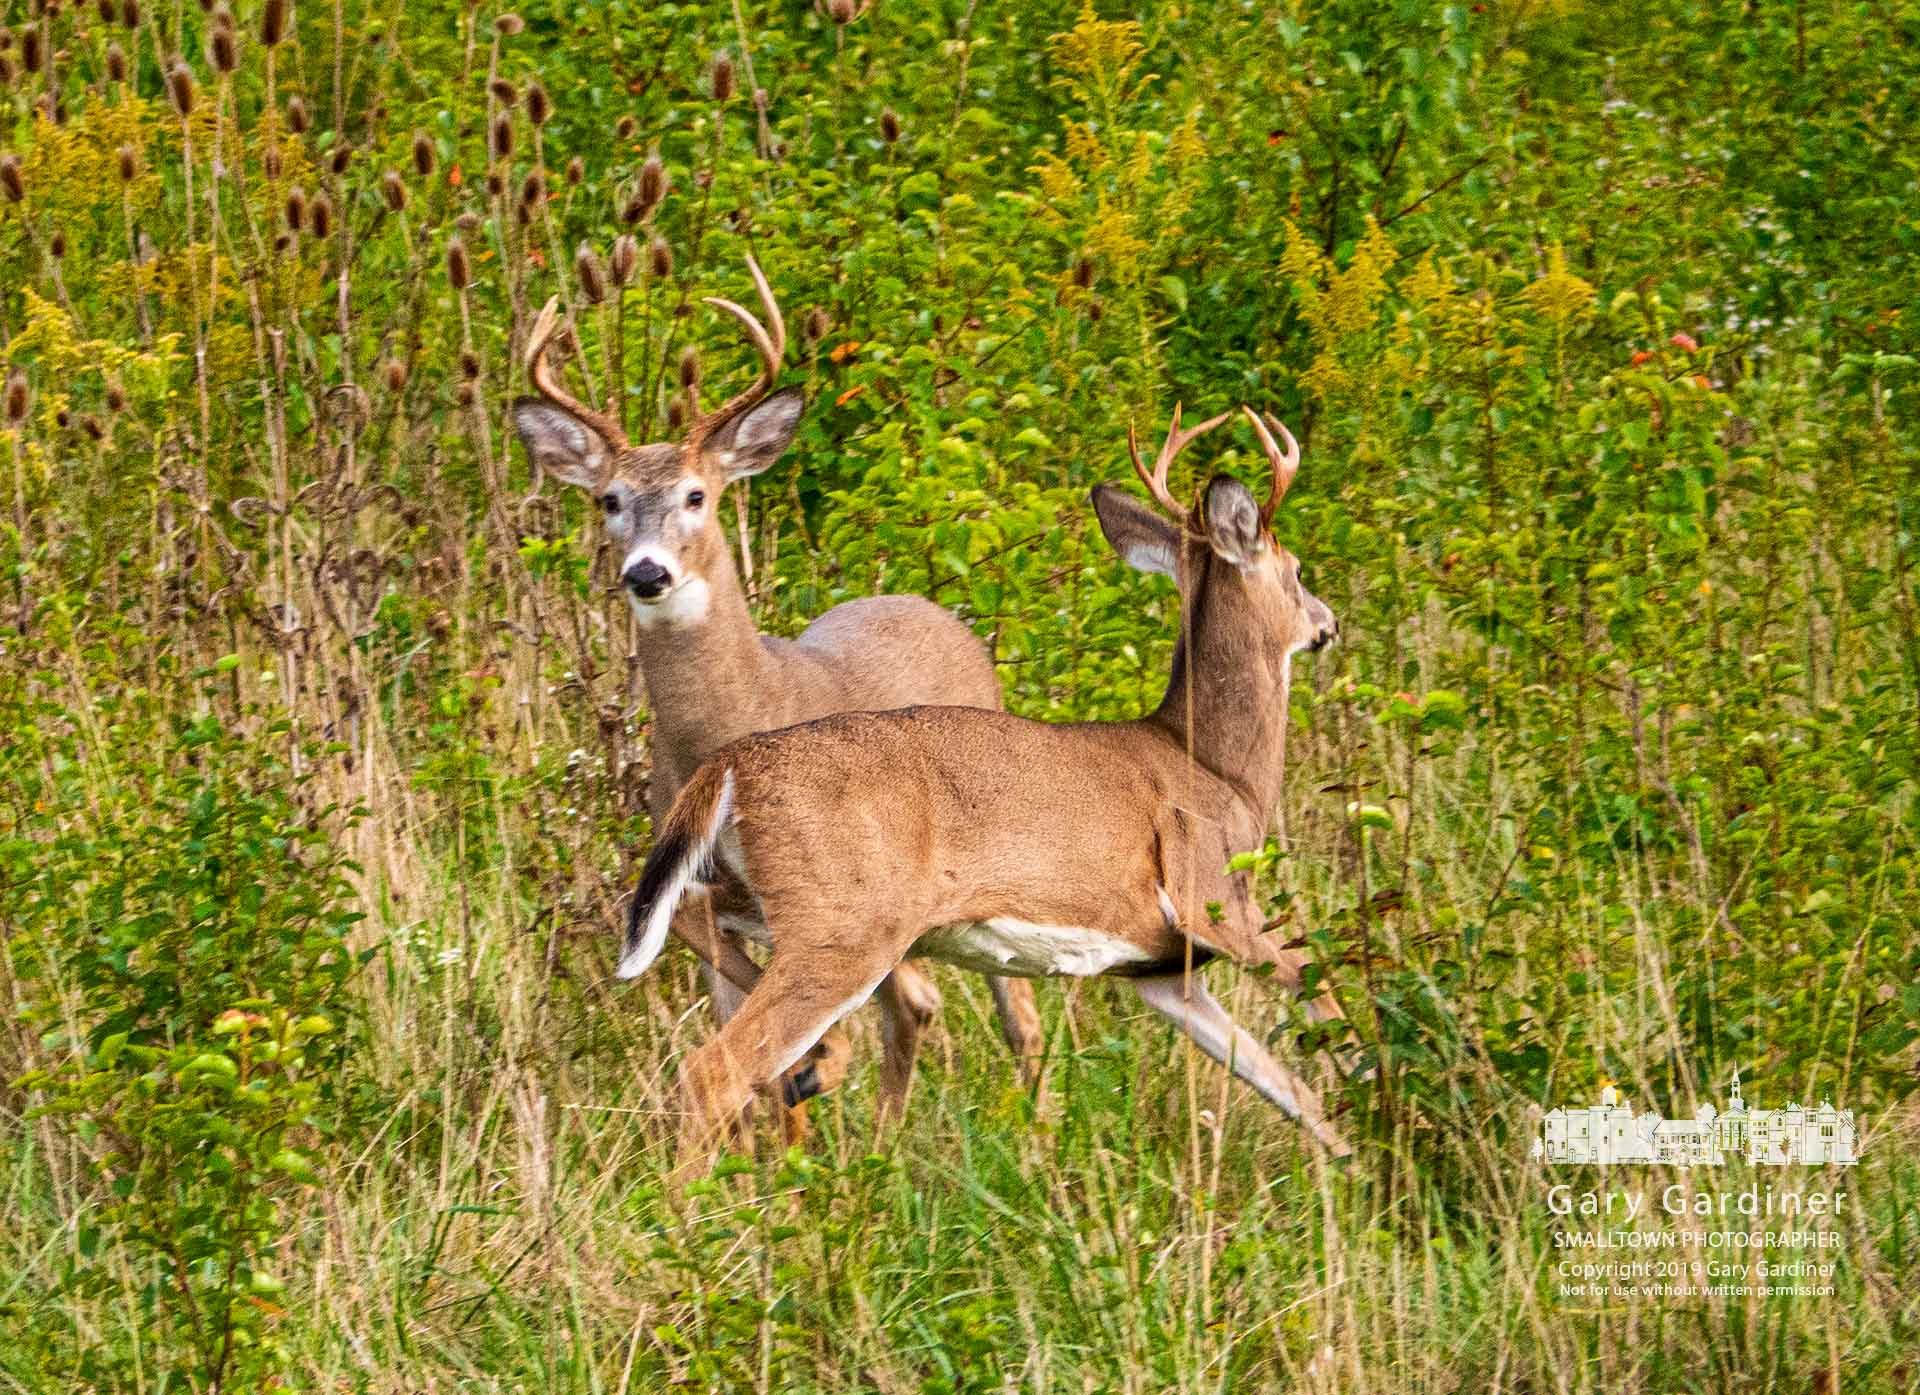 A pair of deer pass each other in one of the small overgrown fields late in the afternoon at the Braun Farm property on Cleveland Ave. My Final Photo for Oct. 7, 2019.